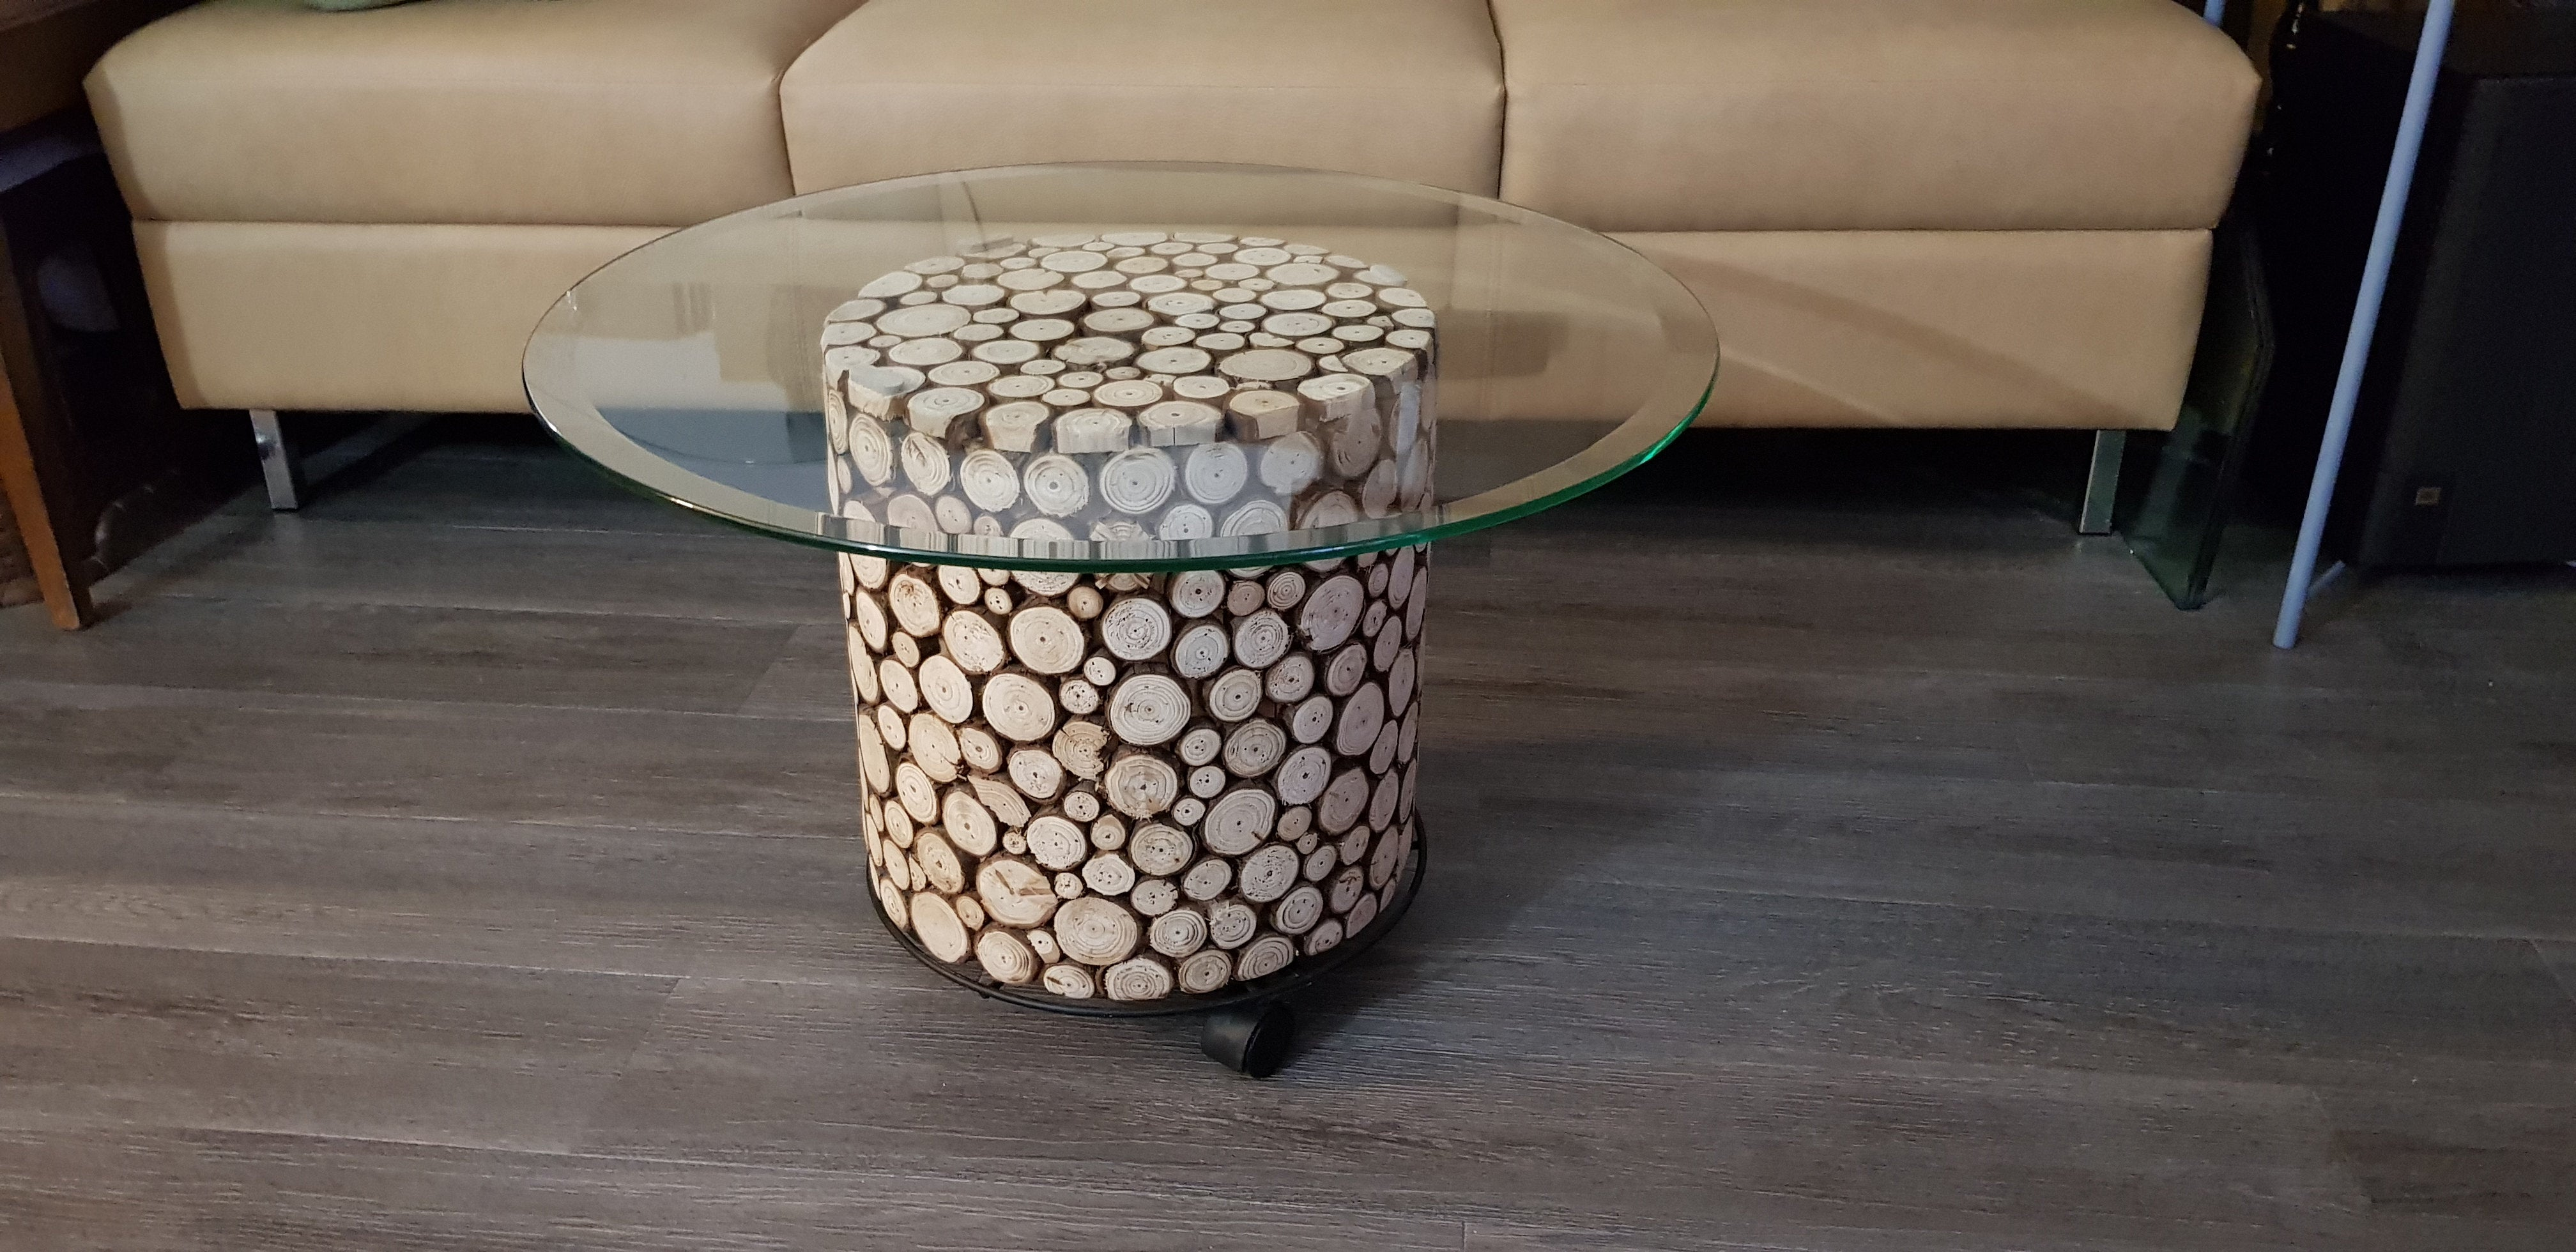 Rustic Fir Wood Log Accent Decor Stool/Side Table